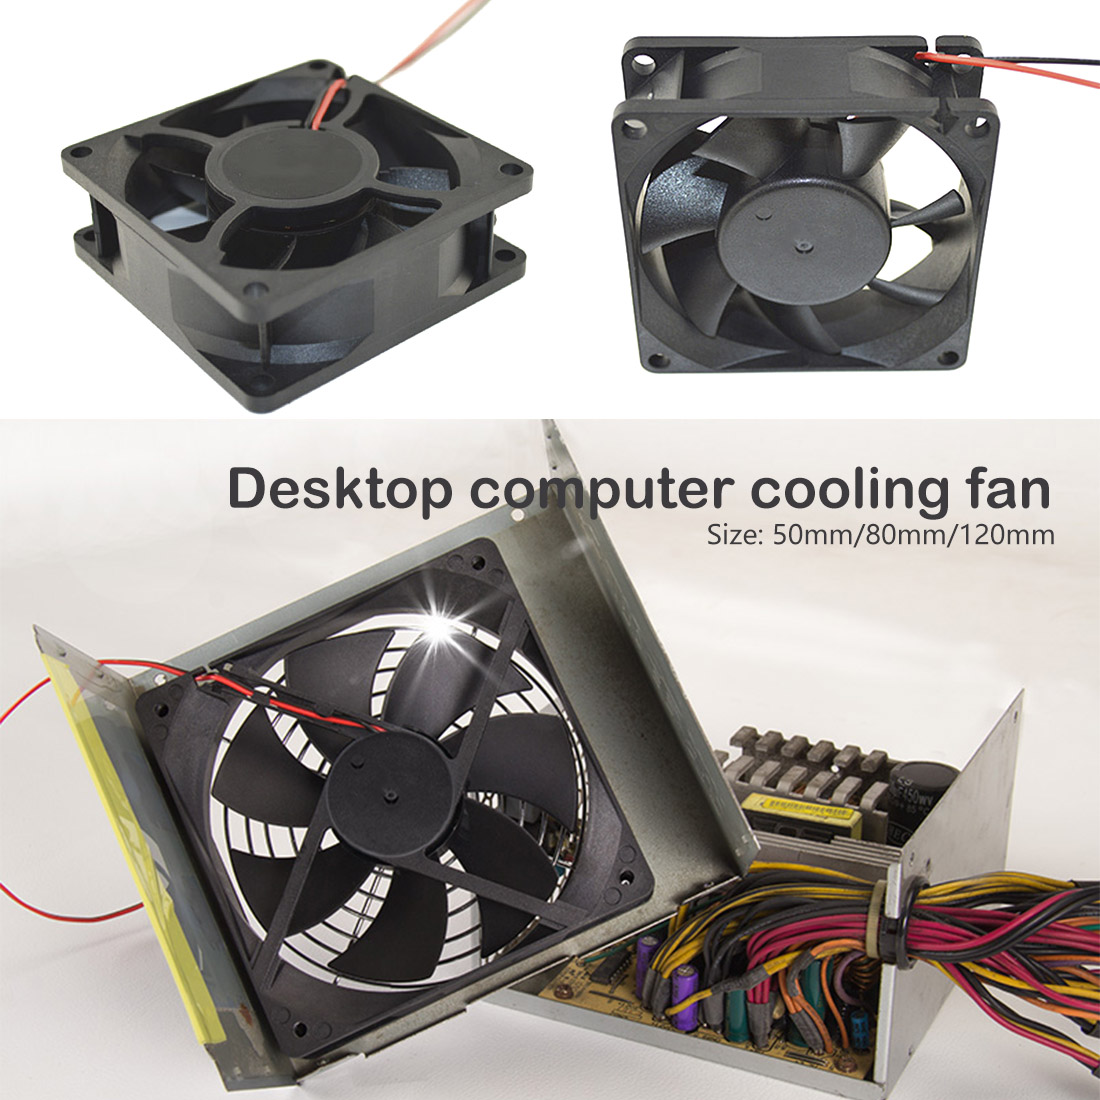 Portable Computer <font><b>Fan</b></font> Cooler 50mm 80mm <font><b>120</b></font> <font><b>mm</b></font> <font><b>12V</b></font> 2 Pin PC CPU Cooling Cooler <font><b>Fan</b></font> for for Computer Case CPU Cooler Radiator image